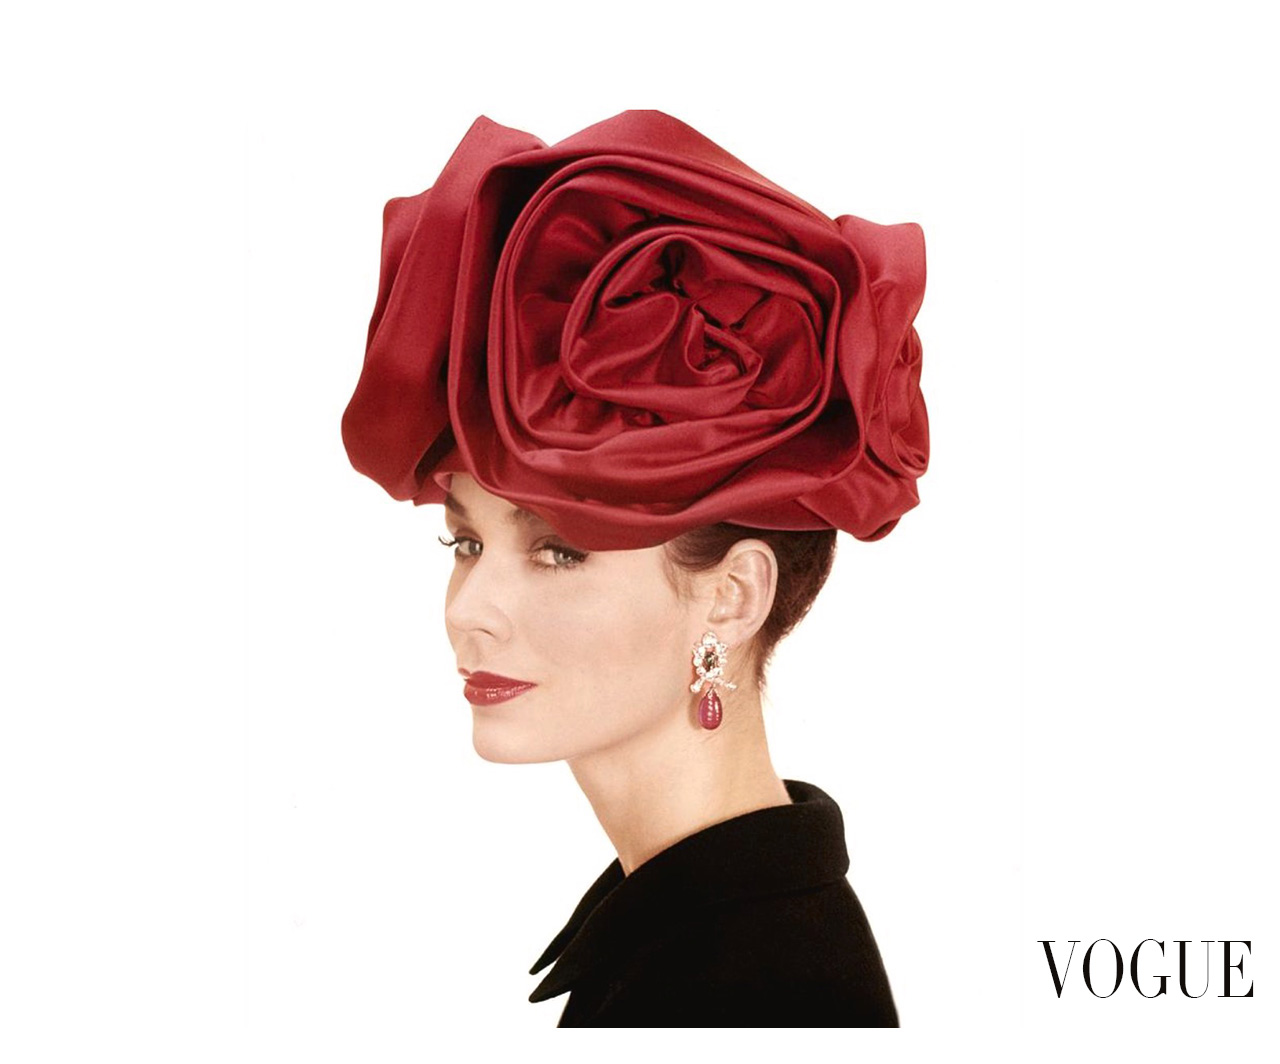 c9132d4953d Portrait of a model wearing a hat of large red satin roses by Lilly Dache  sept